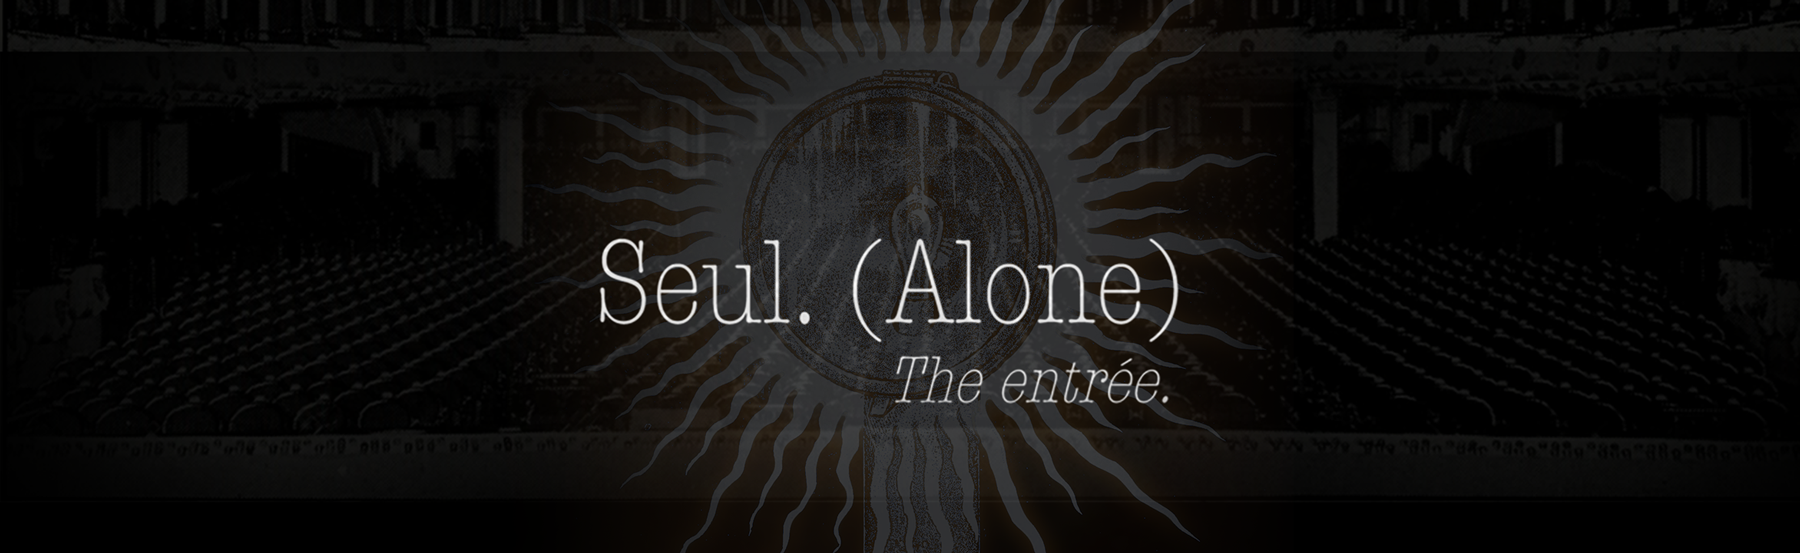 Seul.(Alone): The entrée